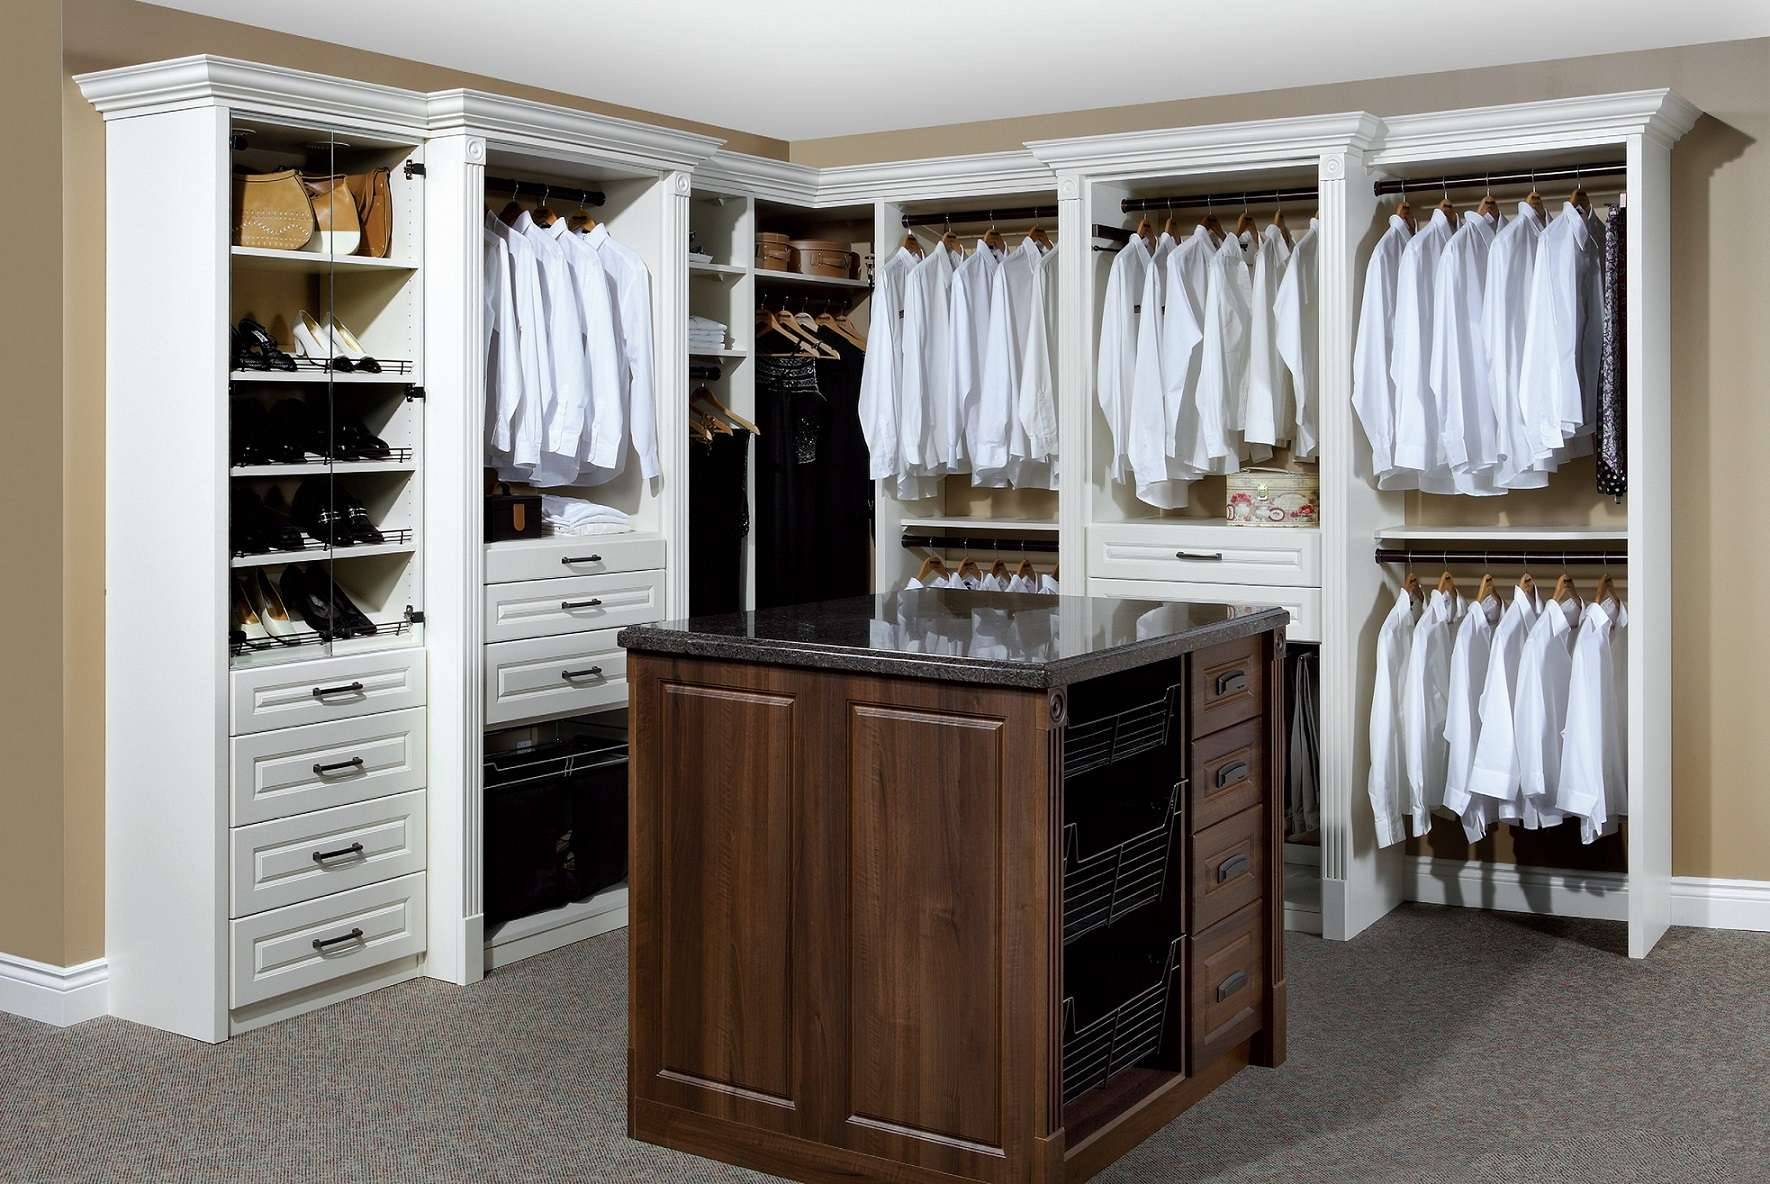 clothes hanging clot bar decorating bedroom ideas bathrooms closet for having without wardrobe make storage room bedrooms alternative